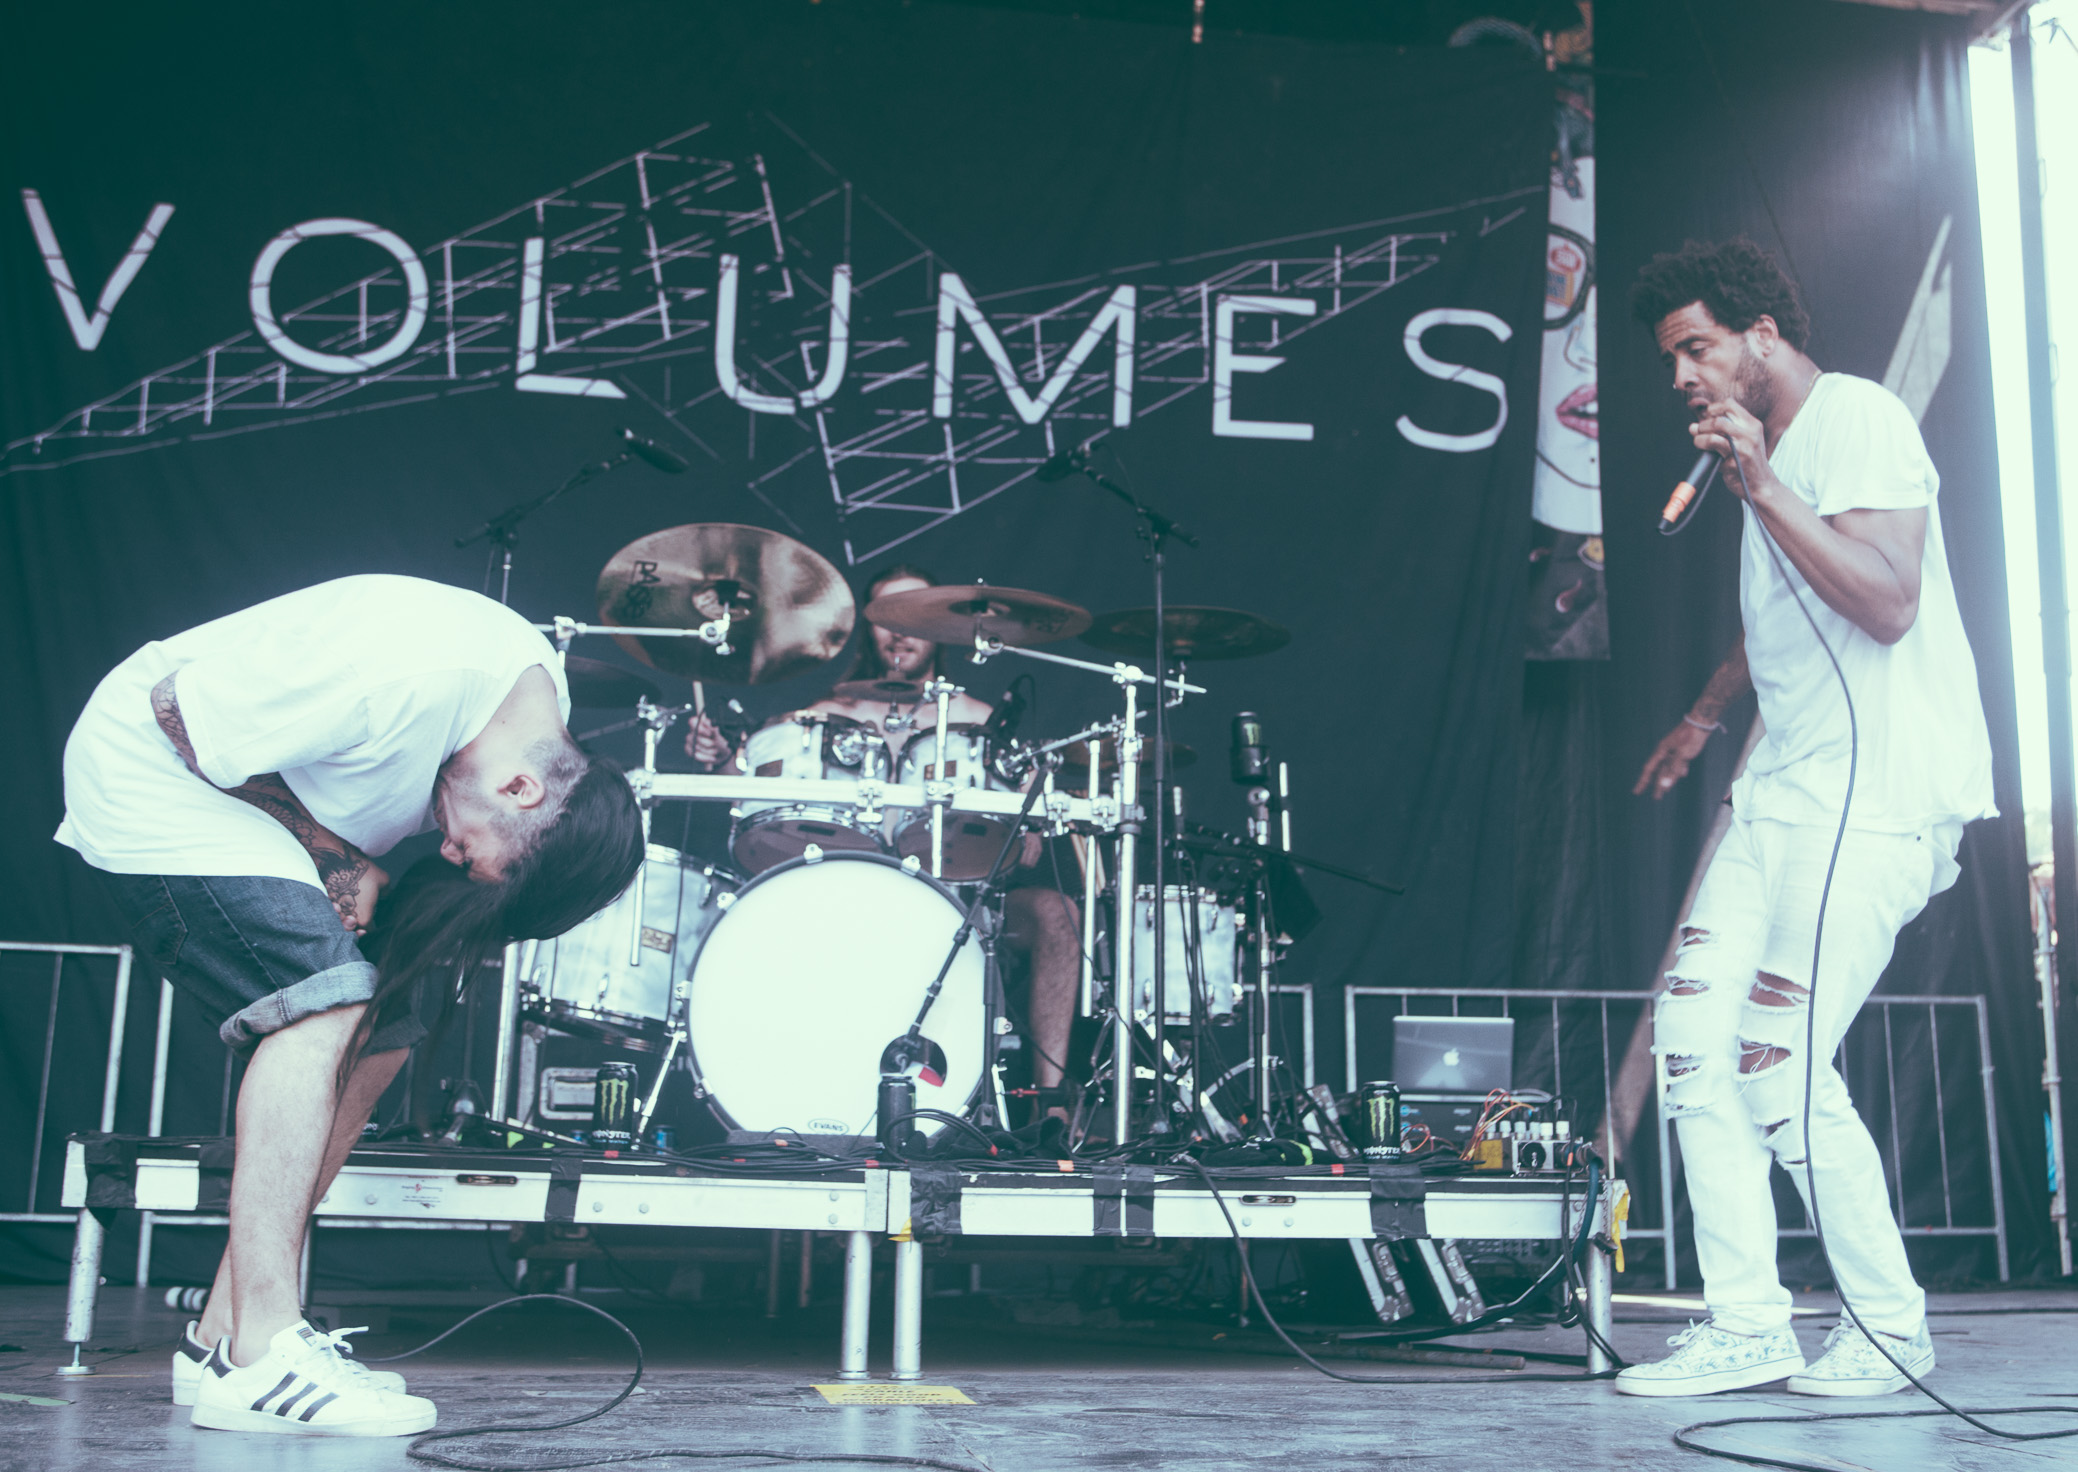 Volumes performs at the Vans Warped Tour in Atlanta, Georgia on June 30th, 2016.   (Photo by David A. Smith/DSmithScenes)